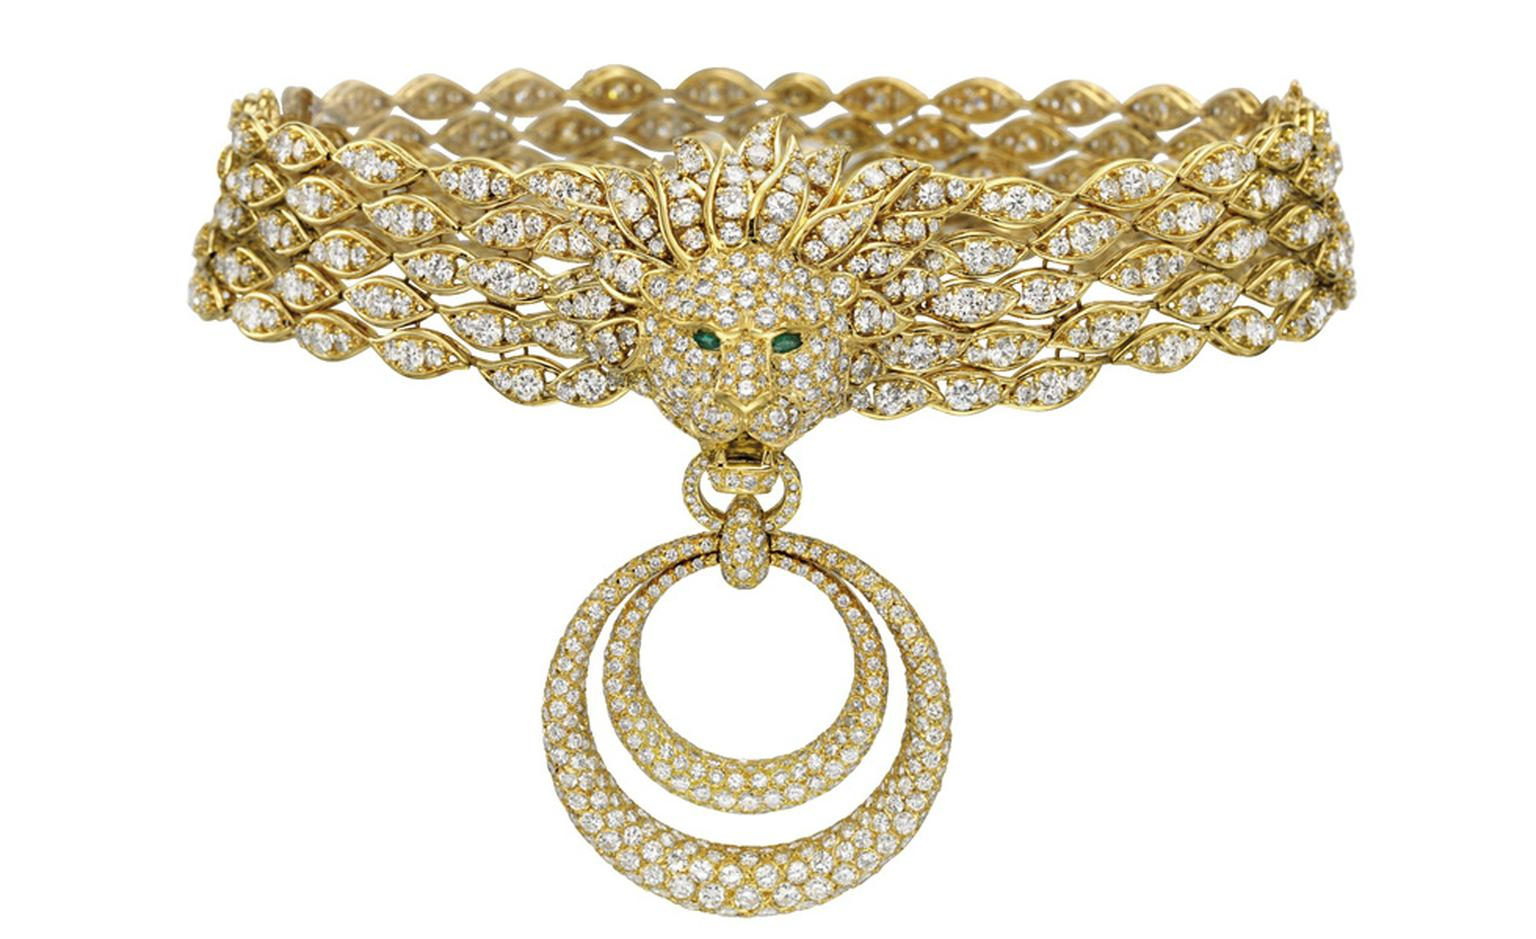 "Necklace from the set of Diamond and Gold ""Barquerolles"" Jewelry by Van Cleef & Arpels Gift from Richard Burton, 1971 Necklace estimate: $120,000 – 180,000"